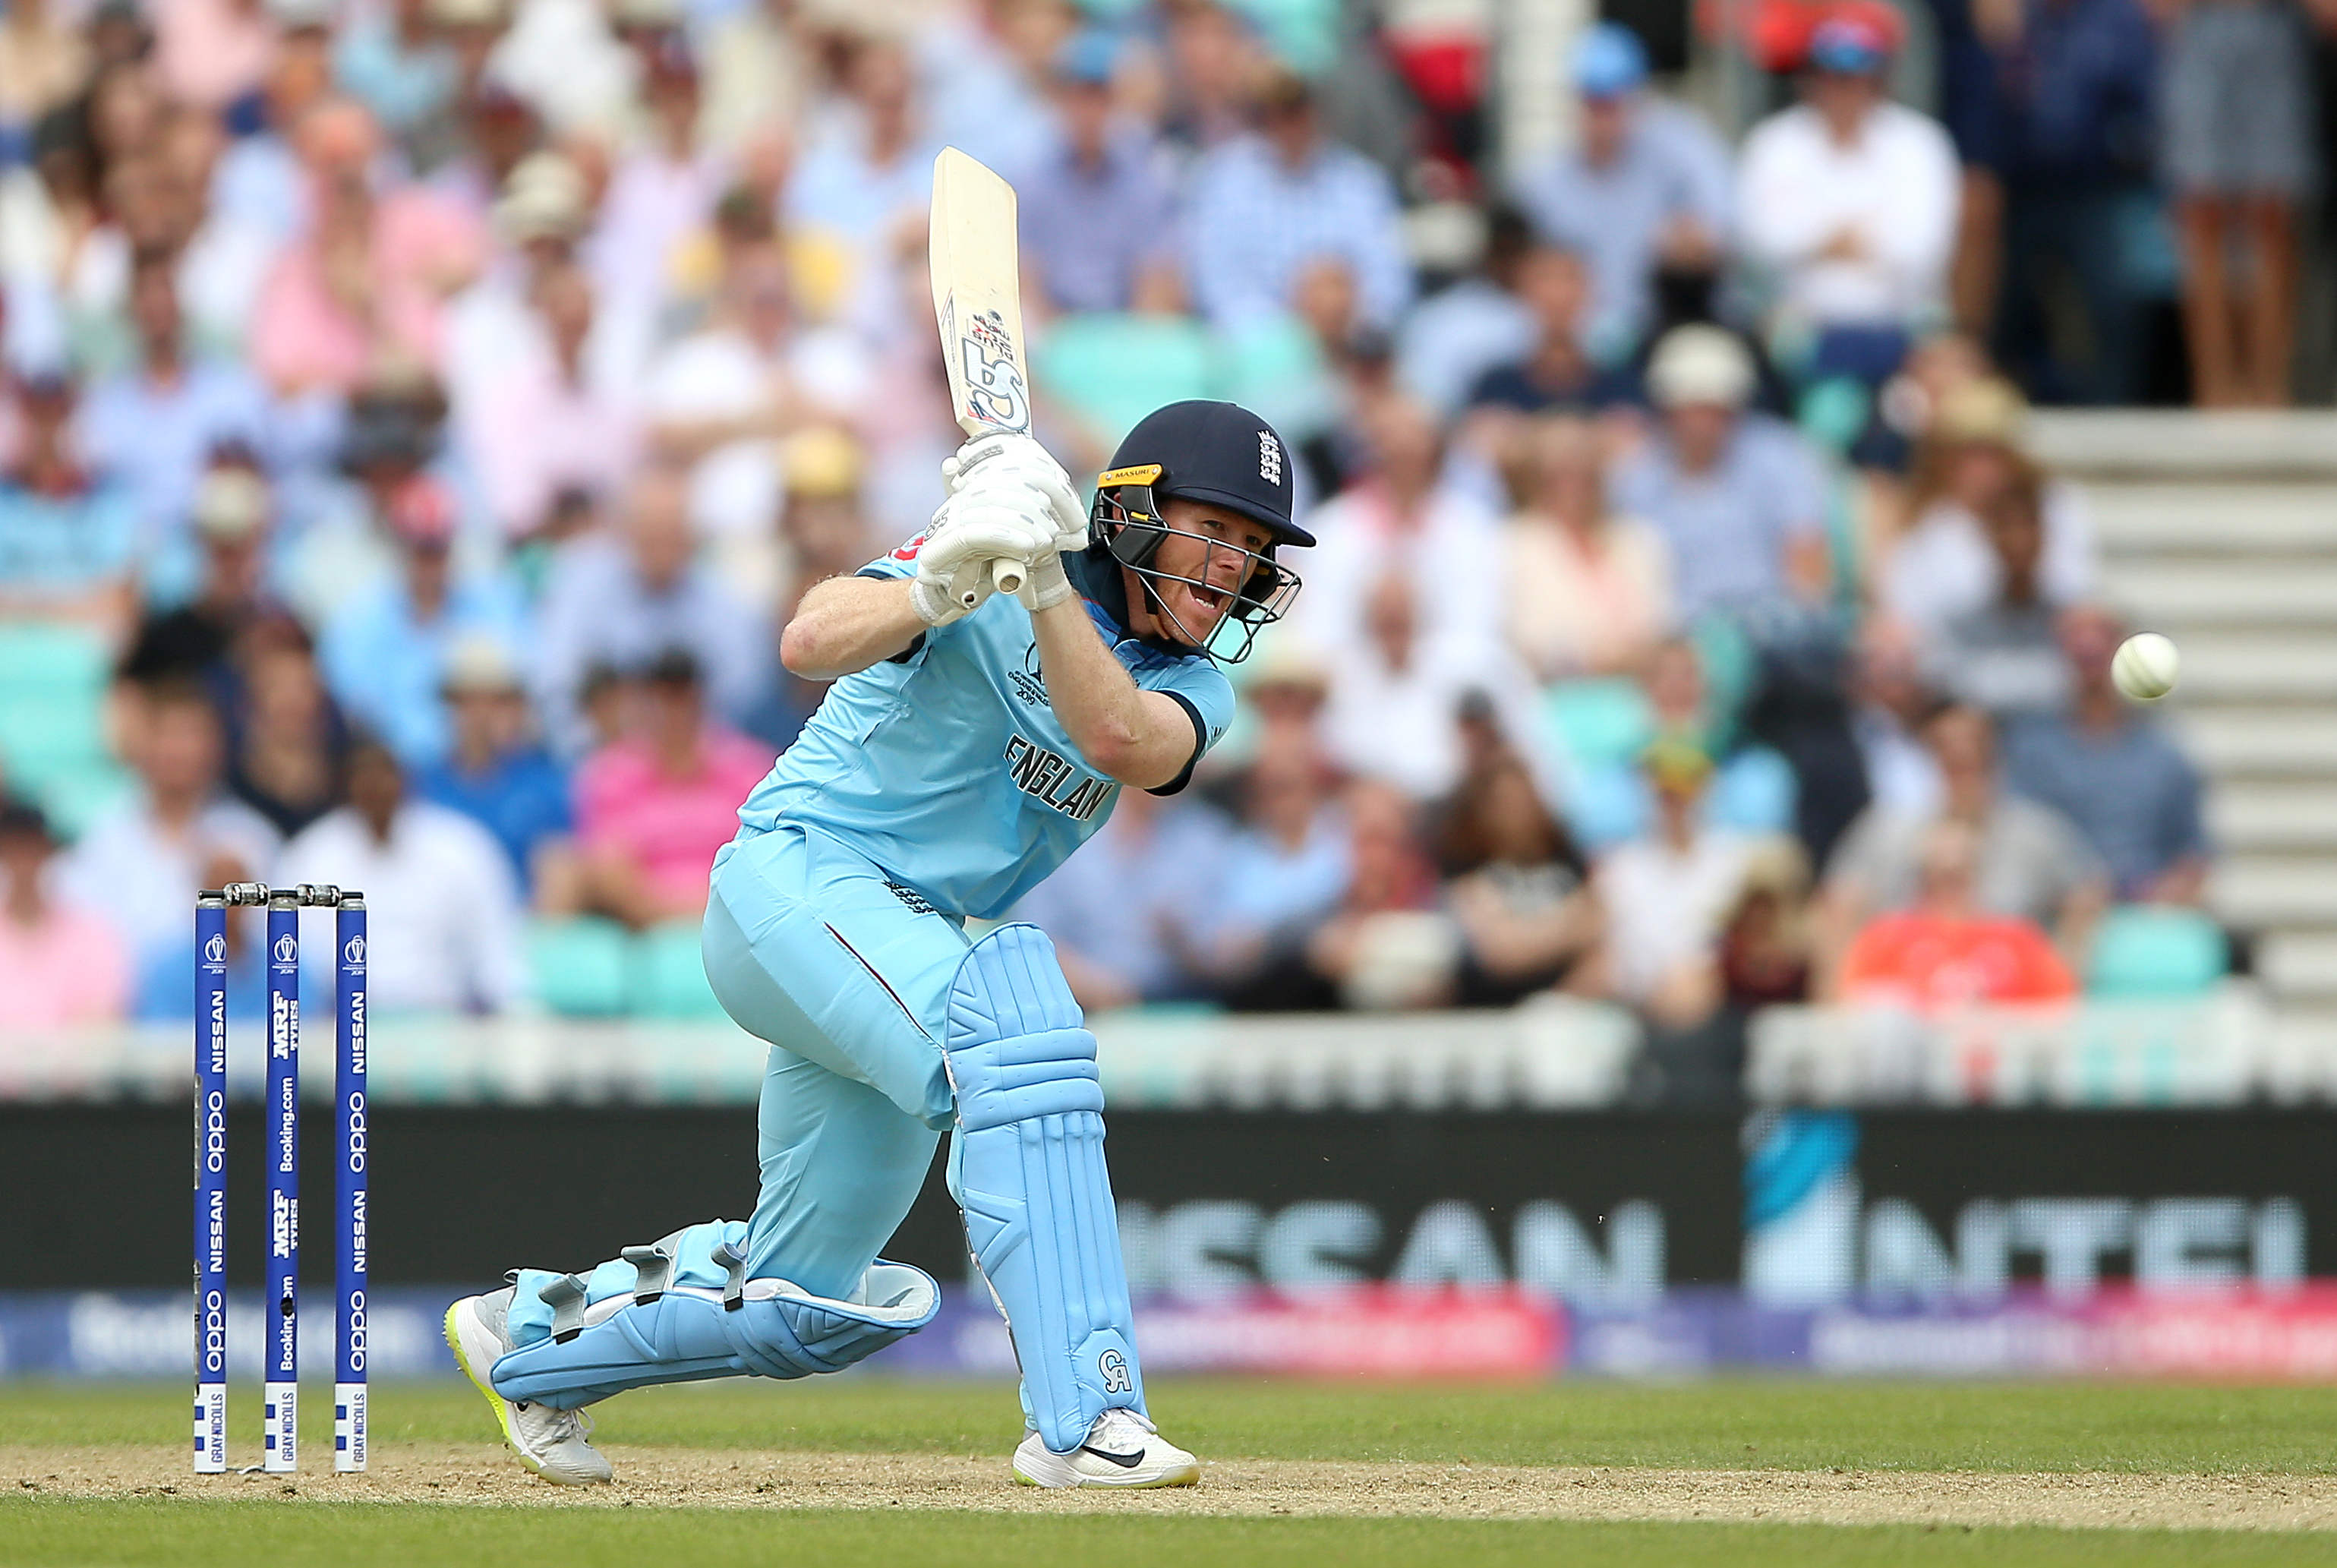 Cricket World Cup: England vs. Sri Lanka Preview and Betting Tips